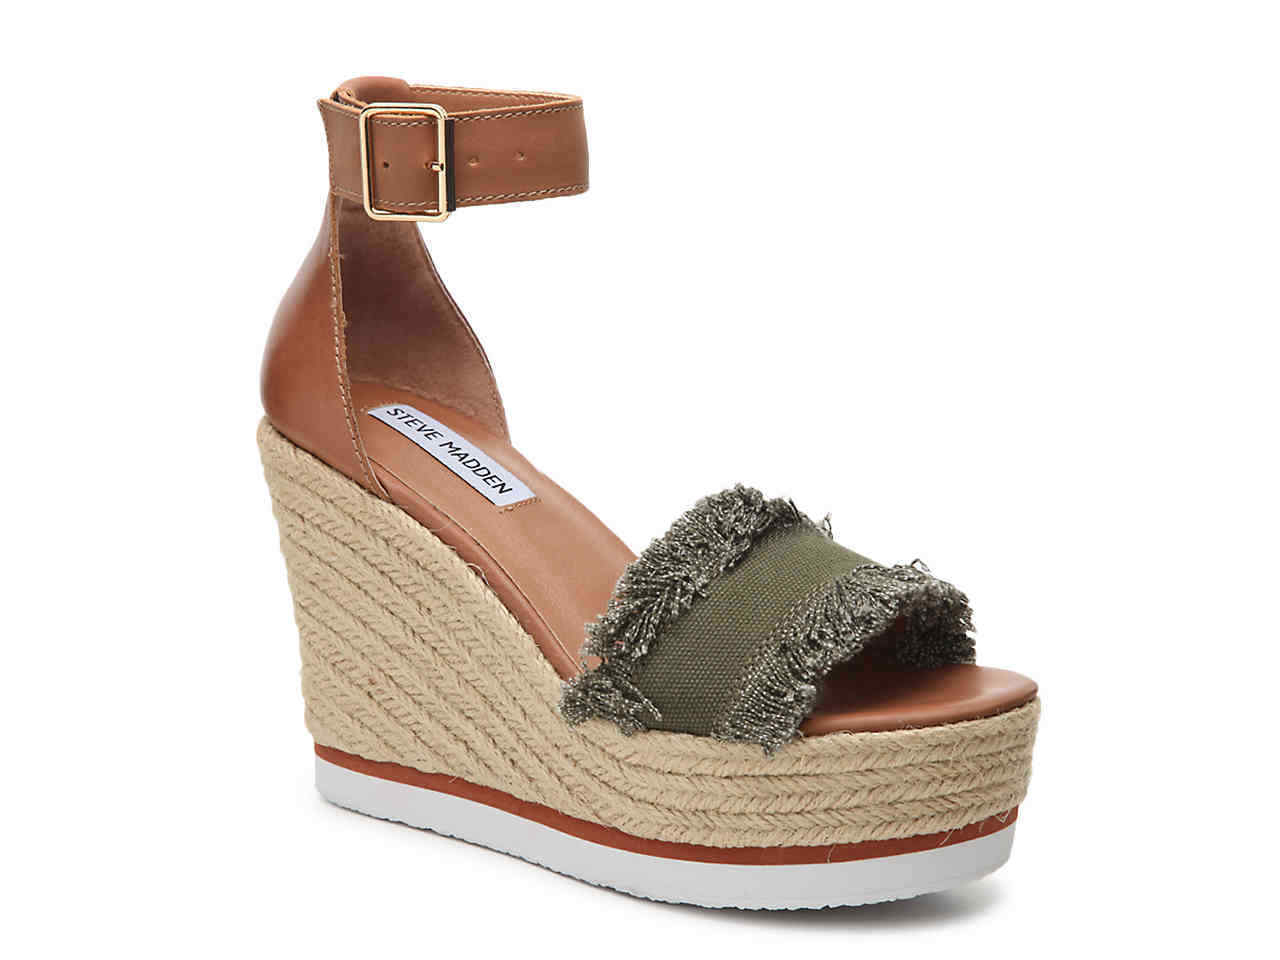 Steve Madden Wouomo Valley Wedge Sandal, Olive Fabric, 10 M US